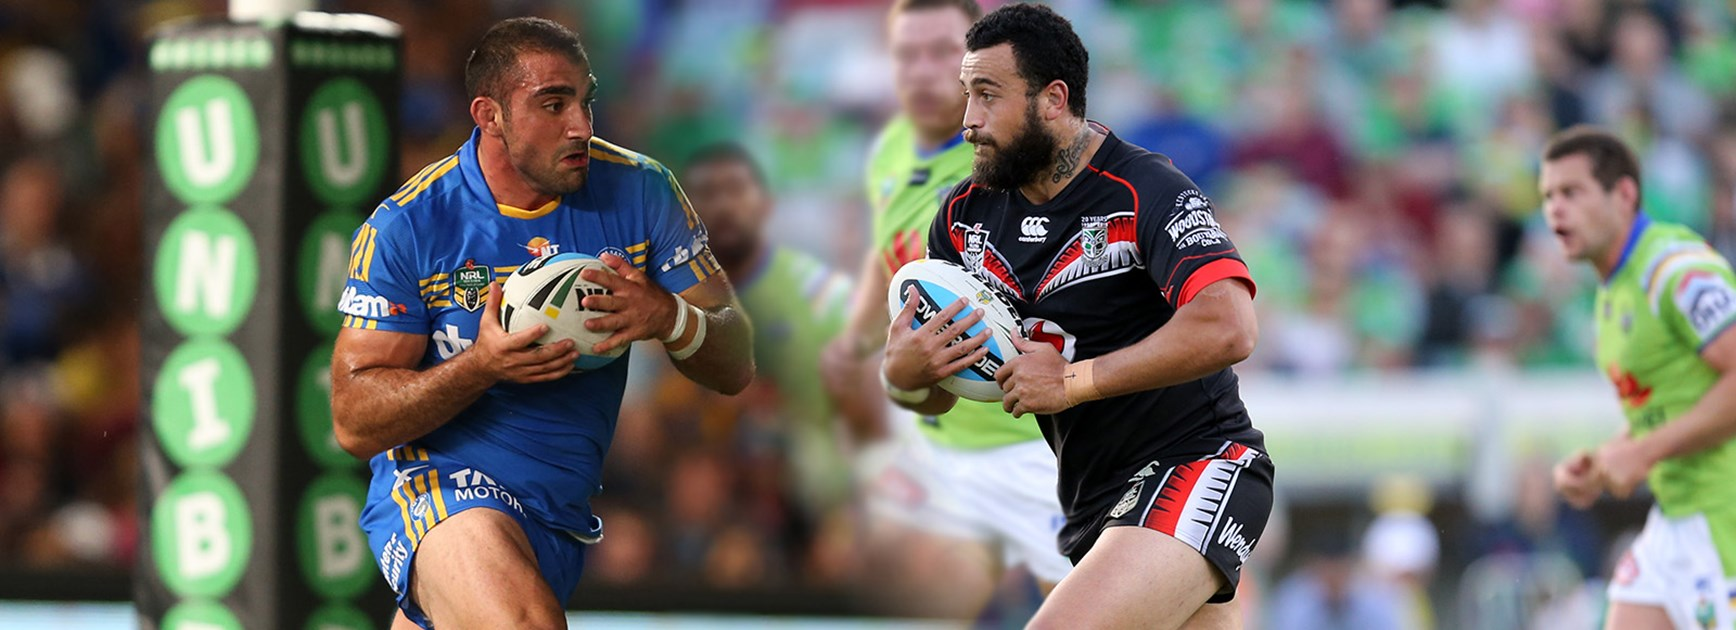 Forward battle: Parramatta's Tim Mannah will need to contain the Warriors Ben Matulino.